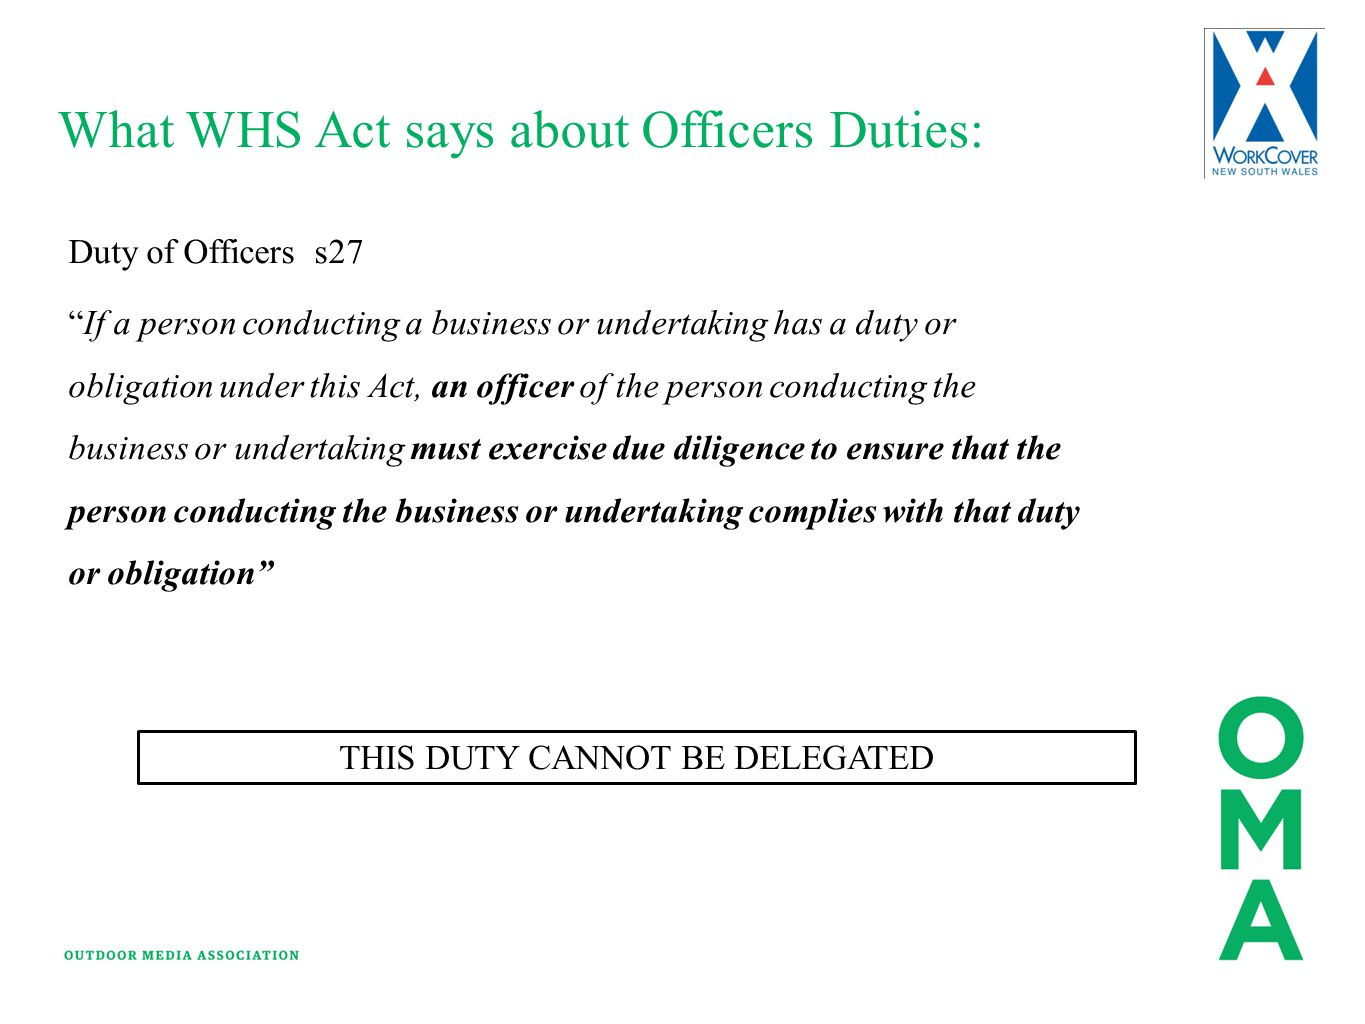 THIS DUTY CANNOT BE DELEGATED